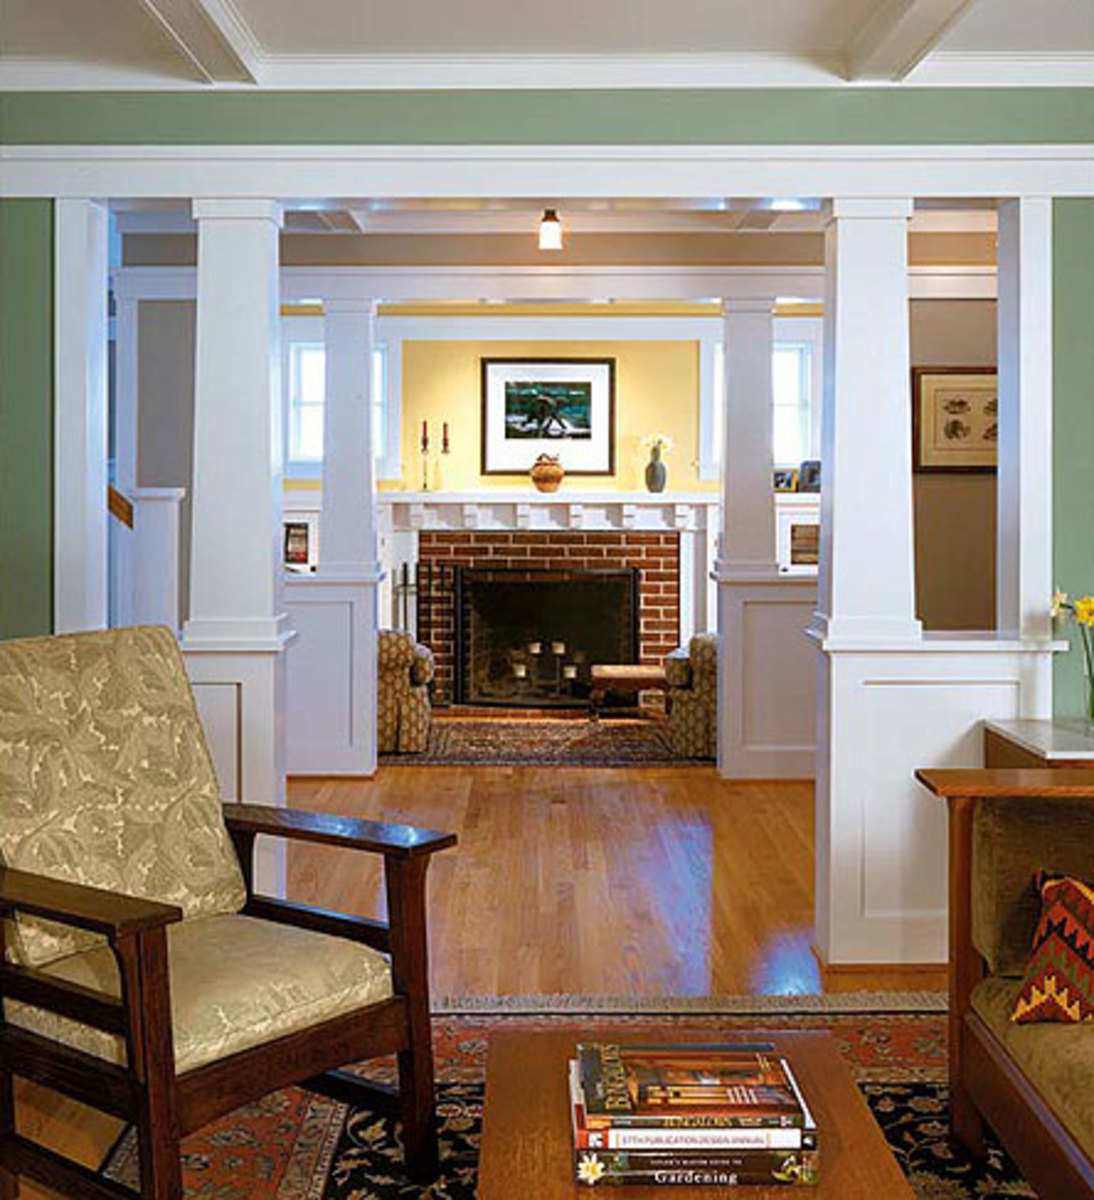 New Colonnades Create A Cozy Inglenook And Entry Foyer In A Postwar Rambler  Recast As A